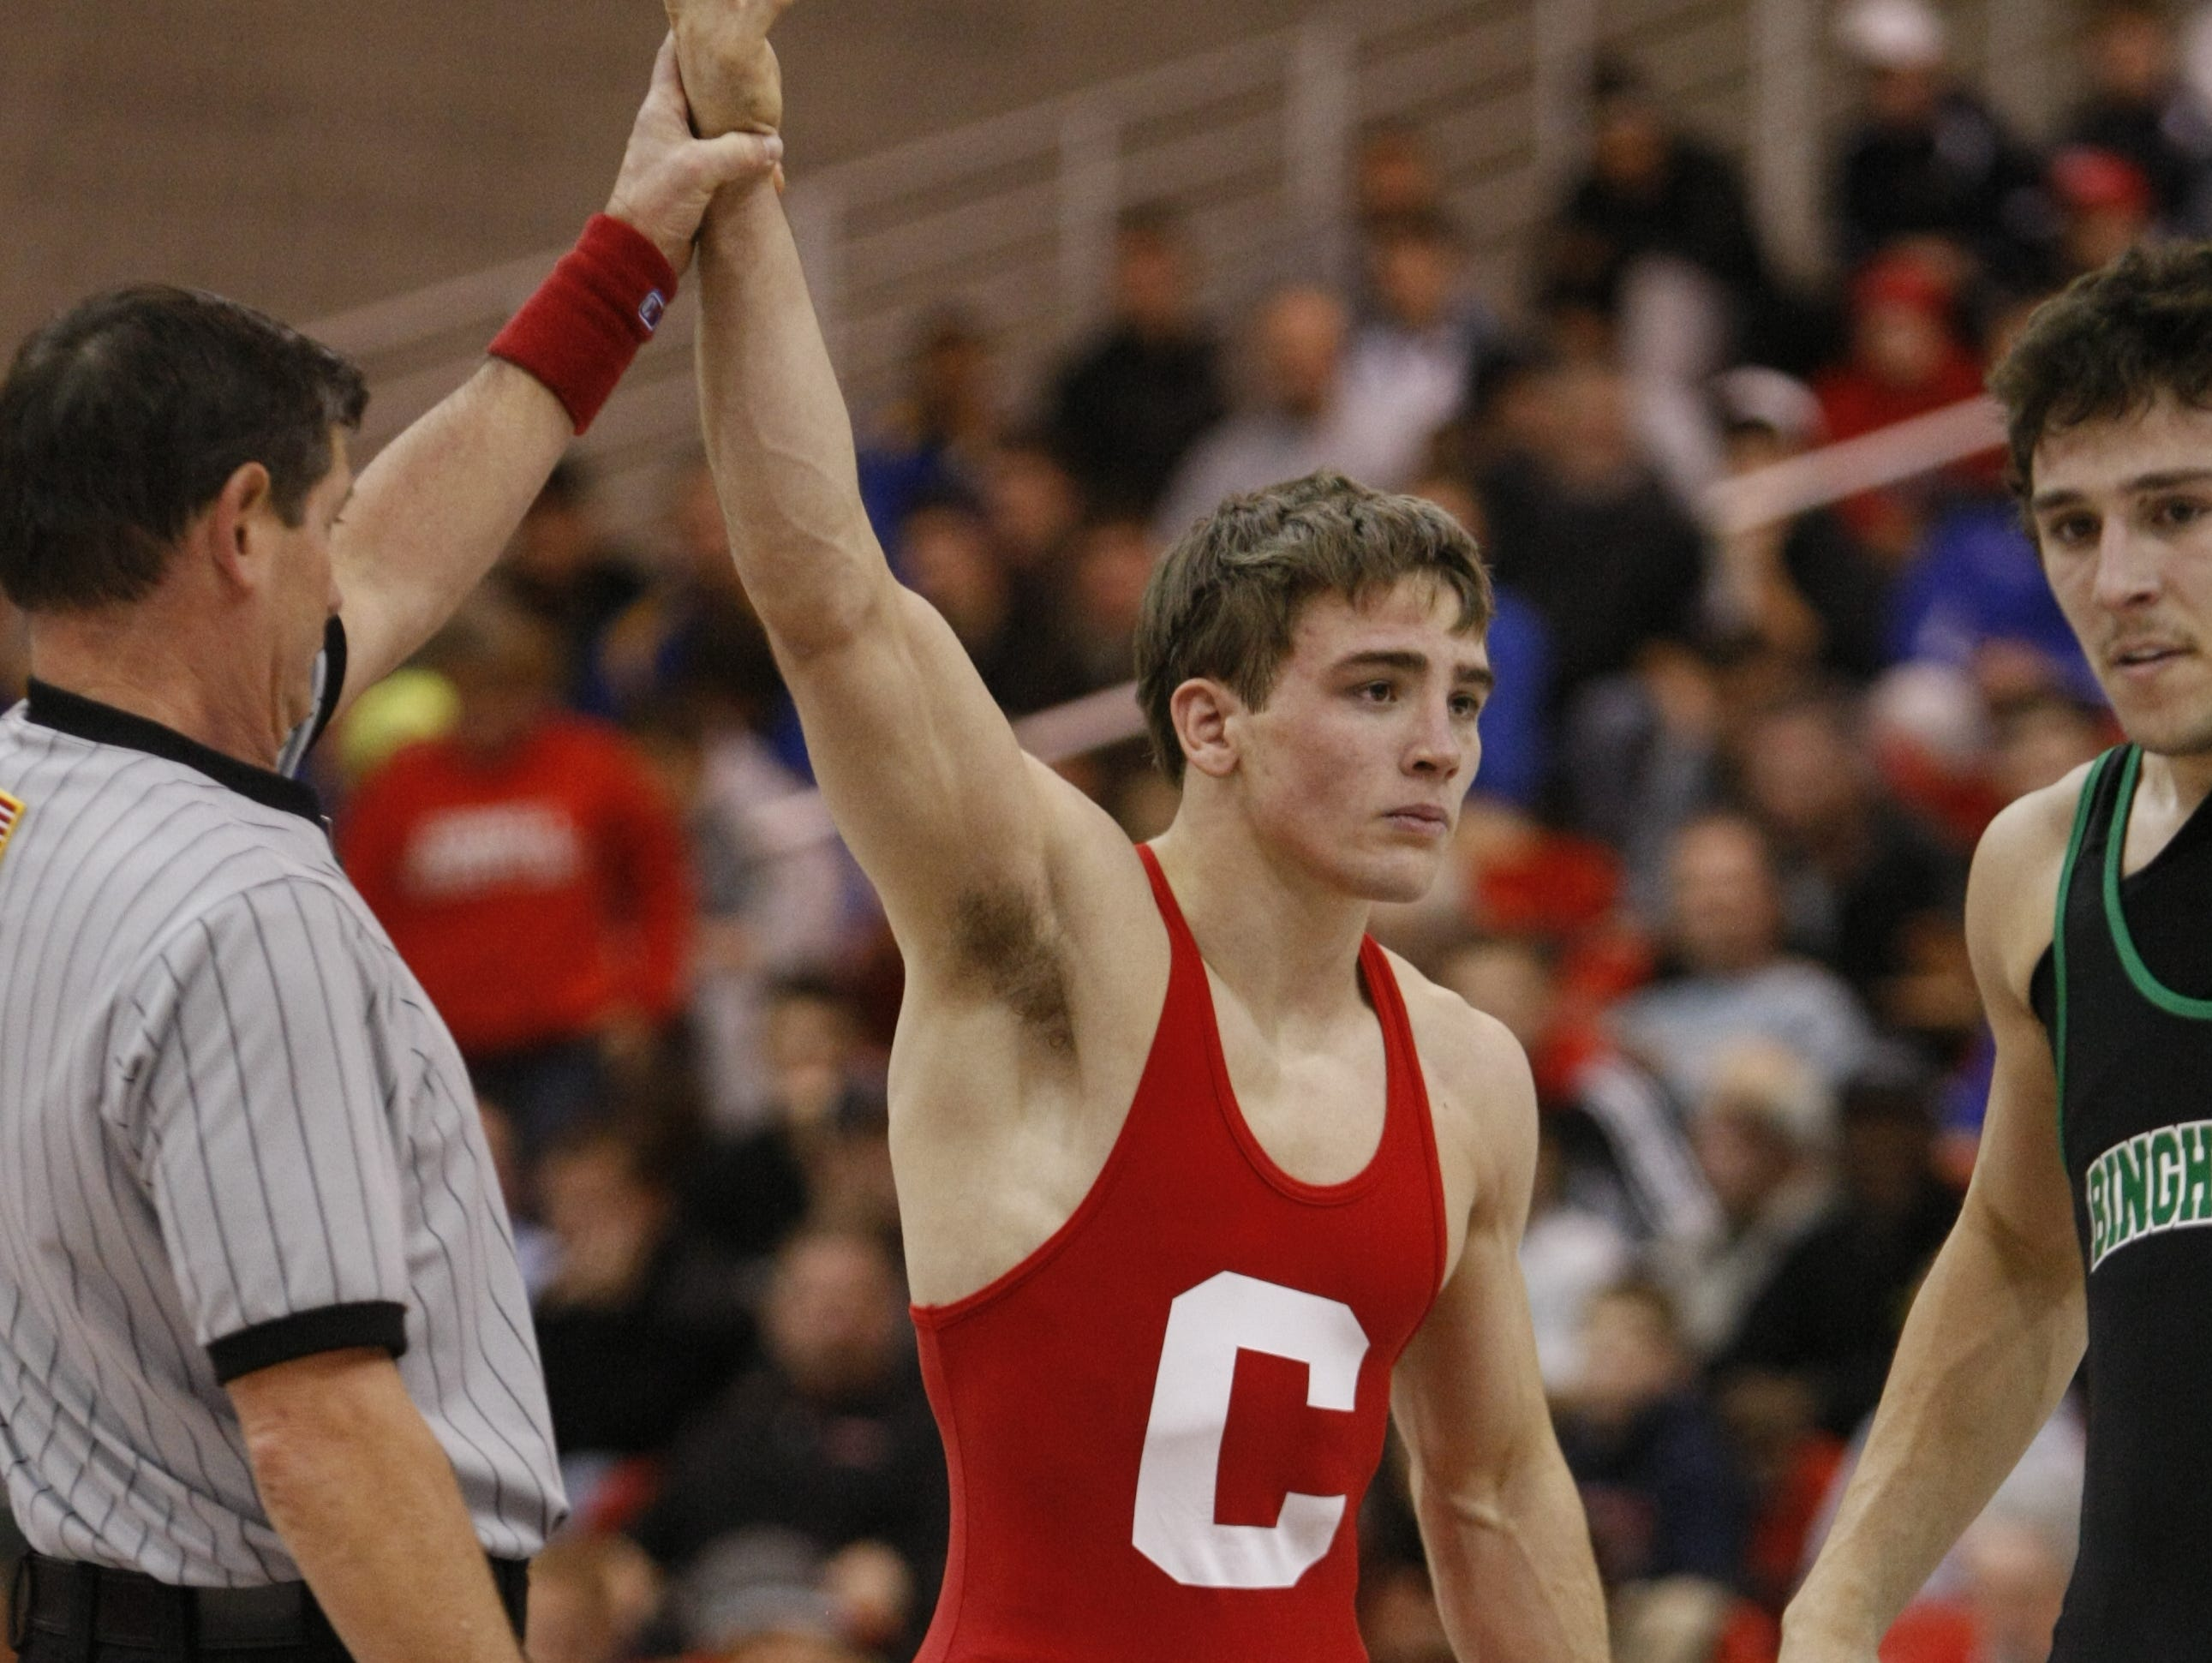 Cornell junior and Somers graduate Brian Realbuto is set to compete in the NCAA Division I wrestling championships at Madison Square Garden on March 17-19.